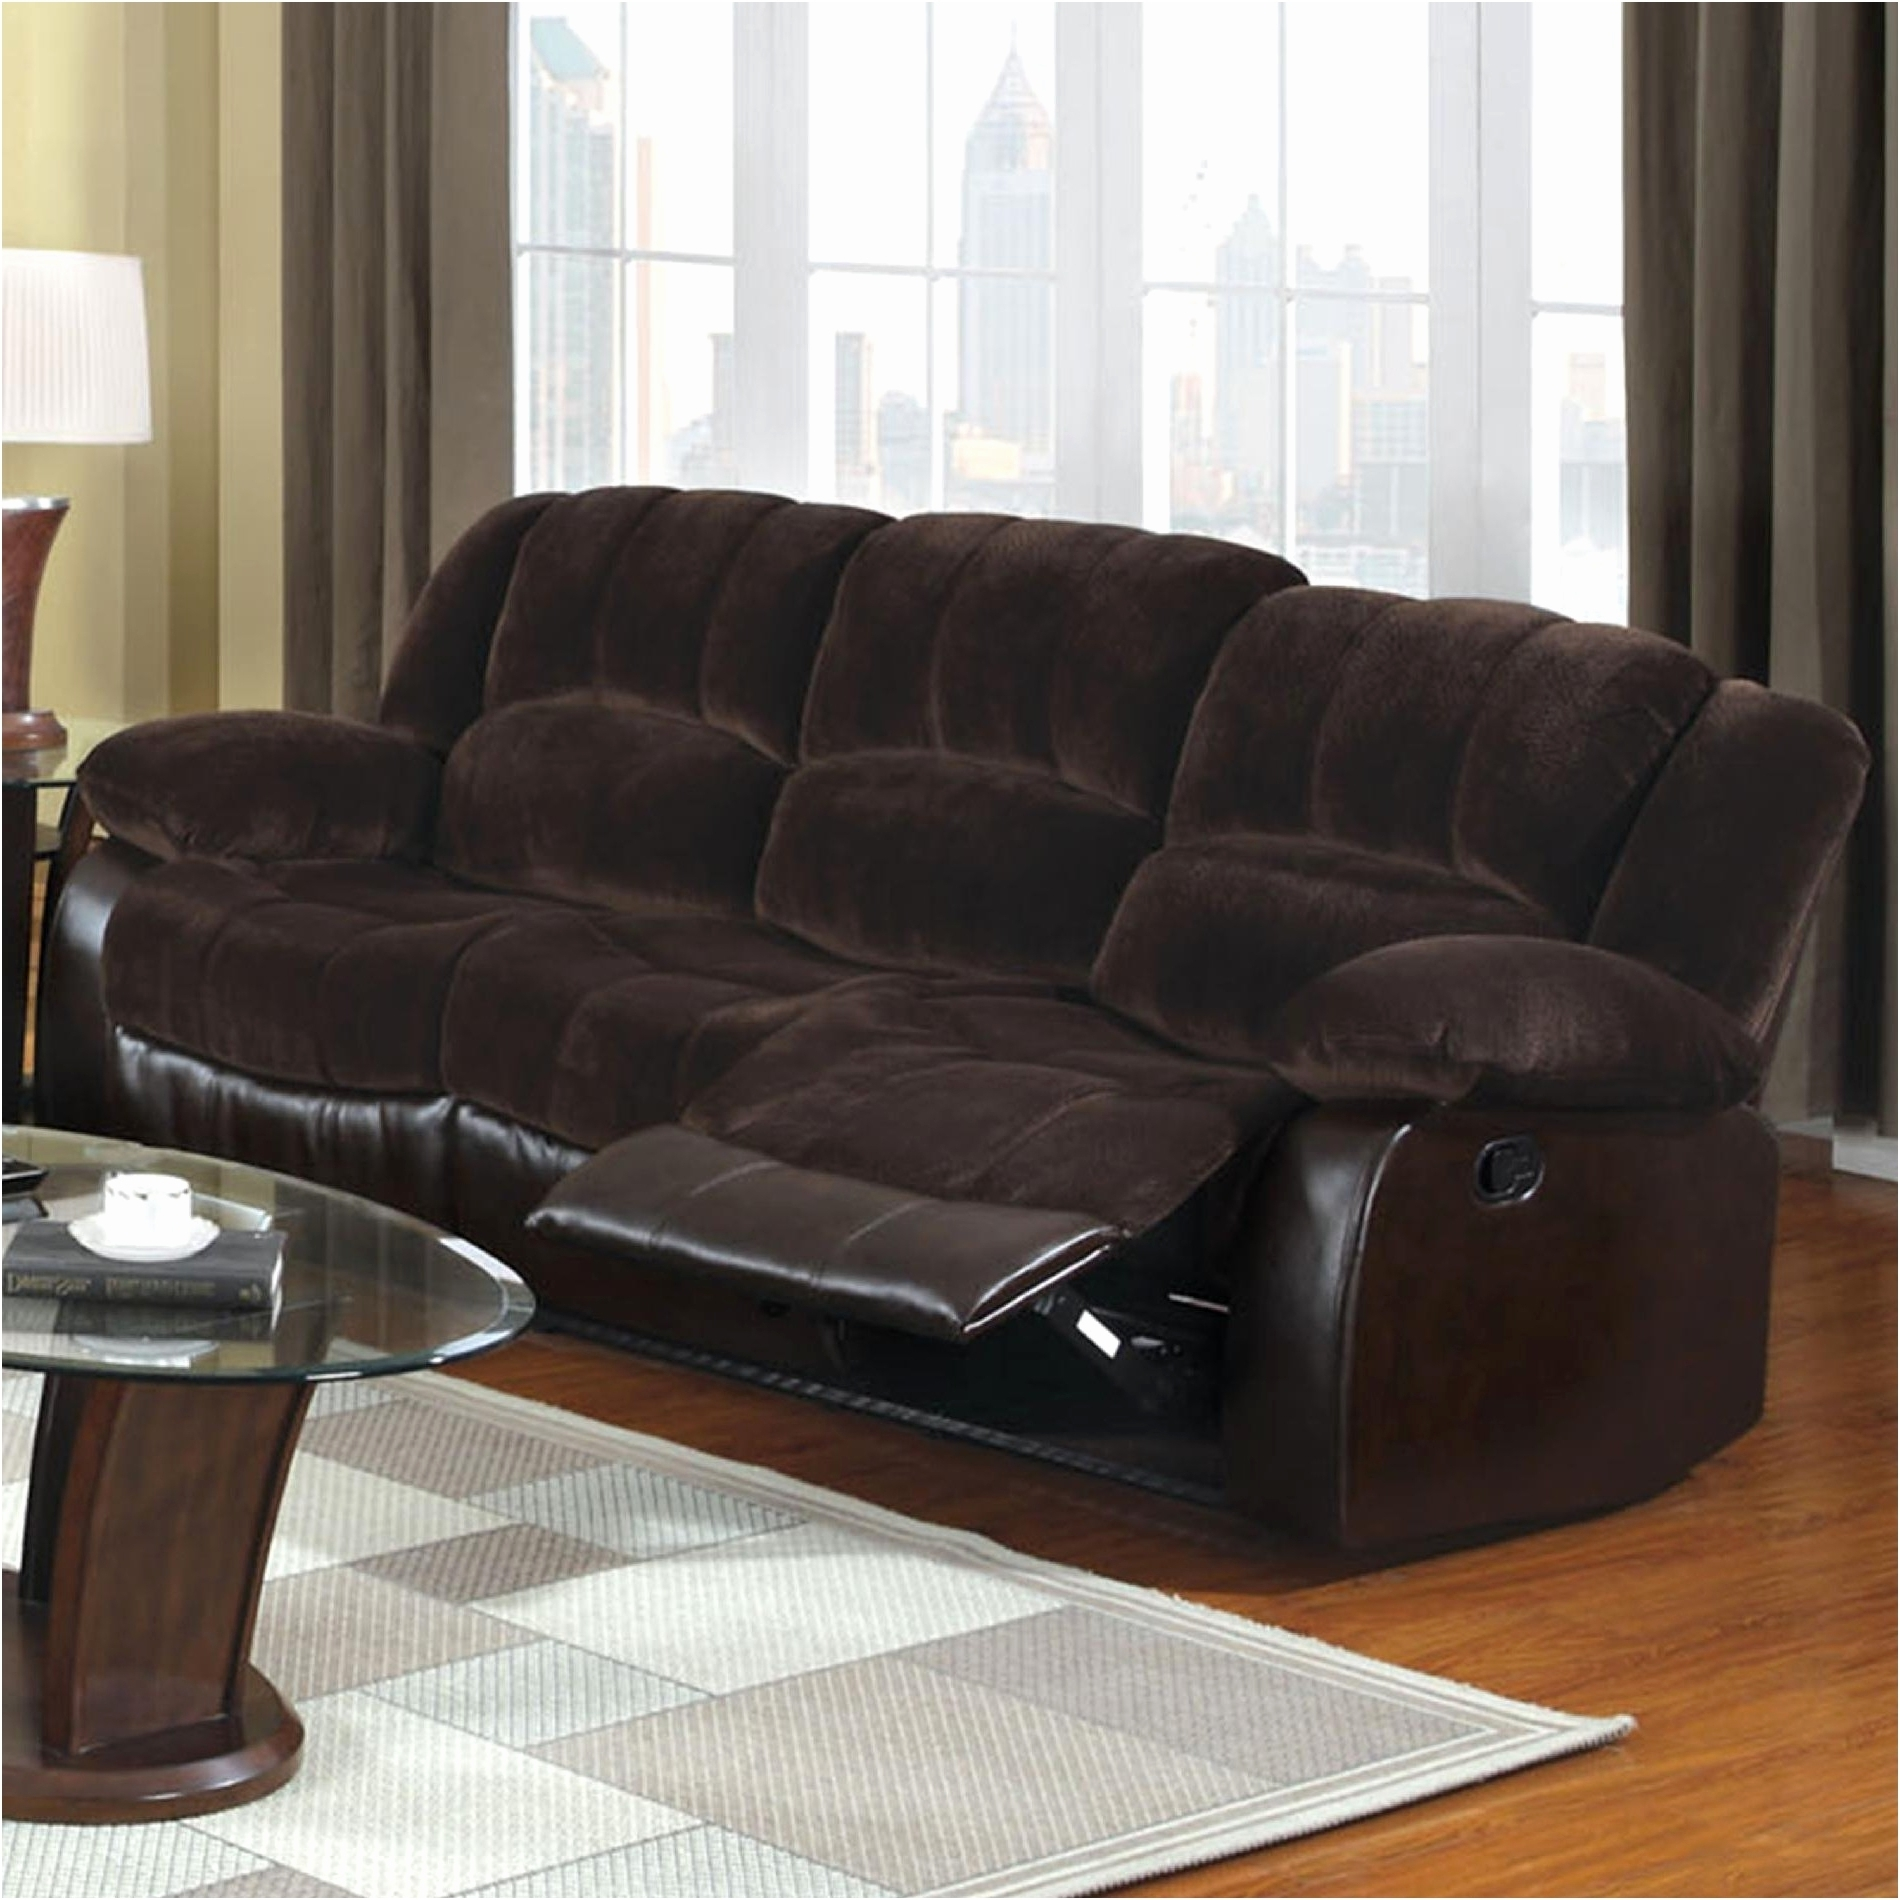 Most Recently Released Fresh Sears Leather Sofa New – Intuisiblog Intended For Sears Sofas (View 2 of 15)